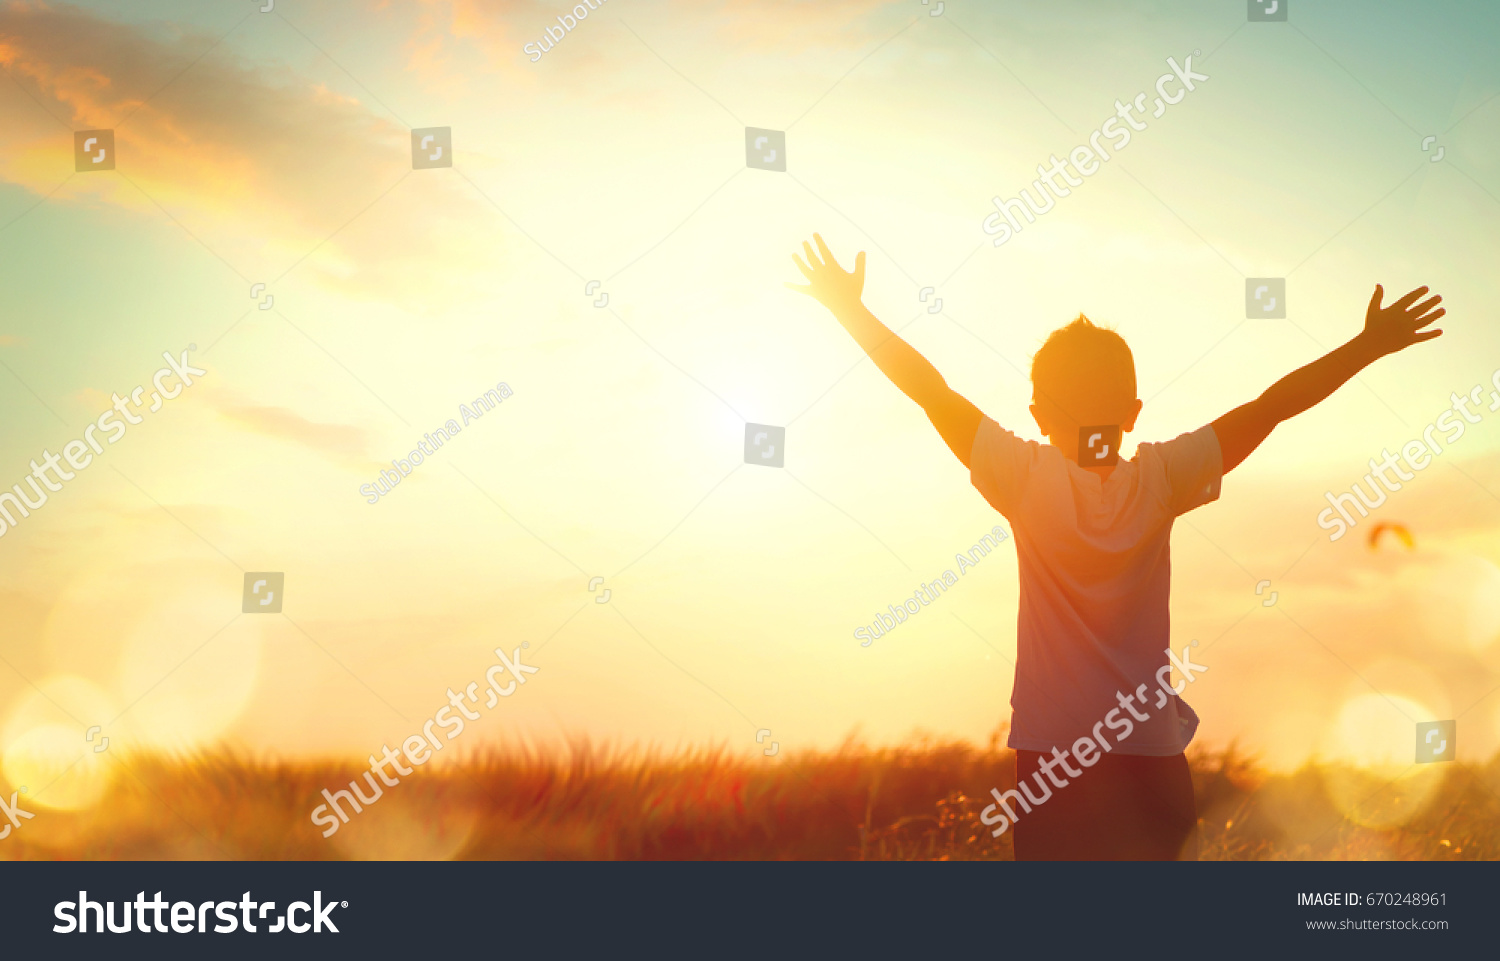 Little boy raising hands over sunset sky, enjoying life and nature. Happy Kid on summer field looking on sun. Silhouette of male child in sunlight rays. Fresh air, environment concept. Dream of flying